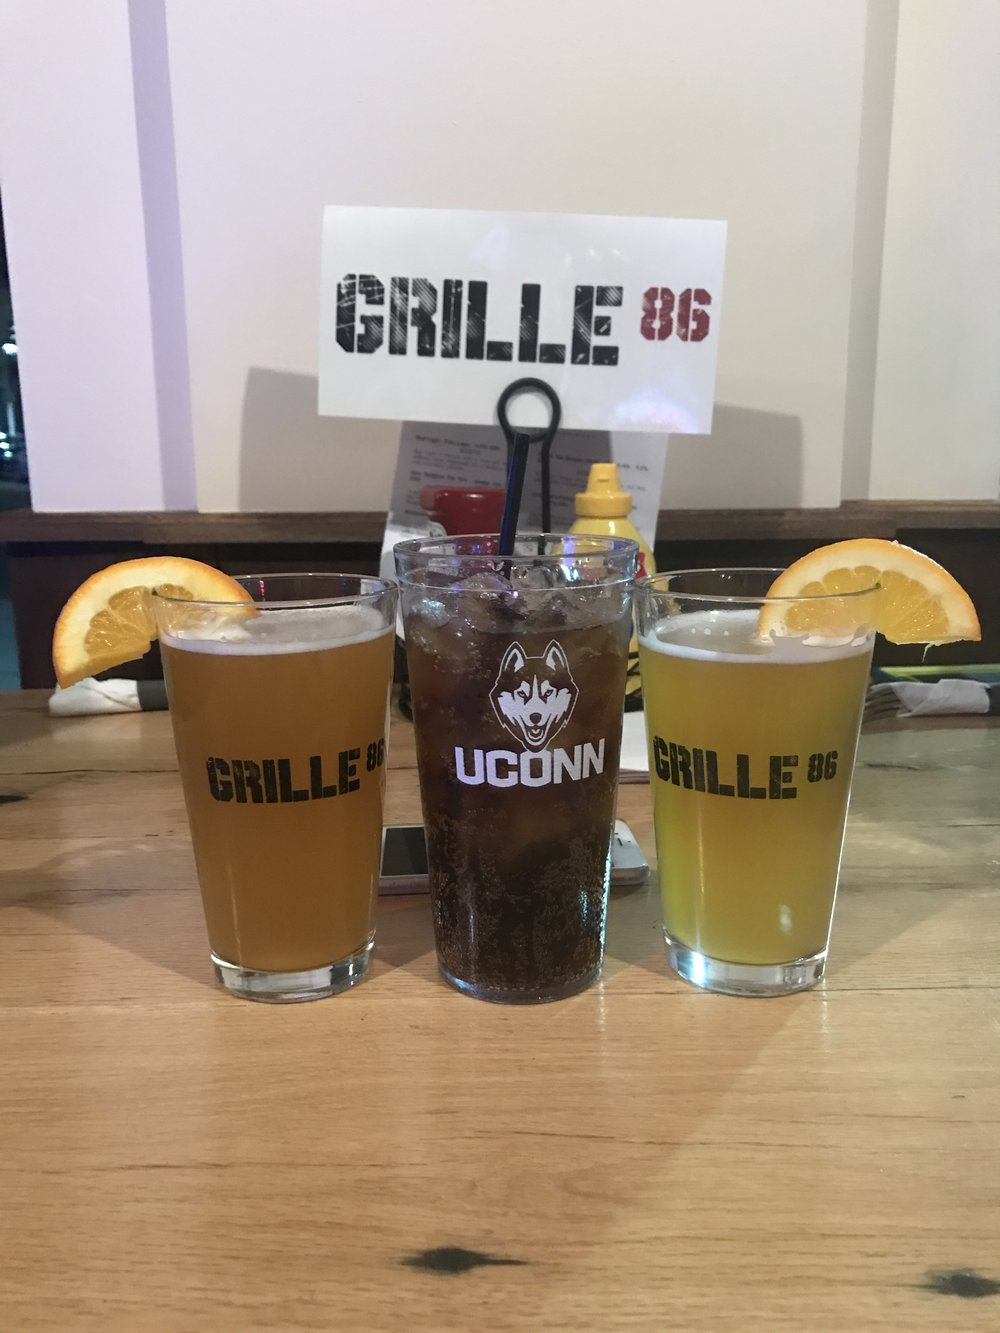 Shock Top Belgian White is on draft along with 23 other brews at the freshly-opened Grille 86 in Storrs Center. The sports bar have two sizes of draft beers, a few bottled beer options and free refills on soft drinks. (Francesca Colturi/The Daily Campus)